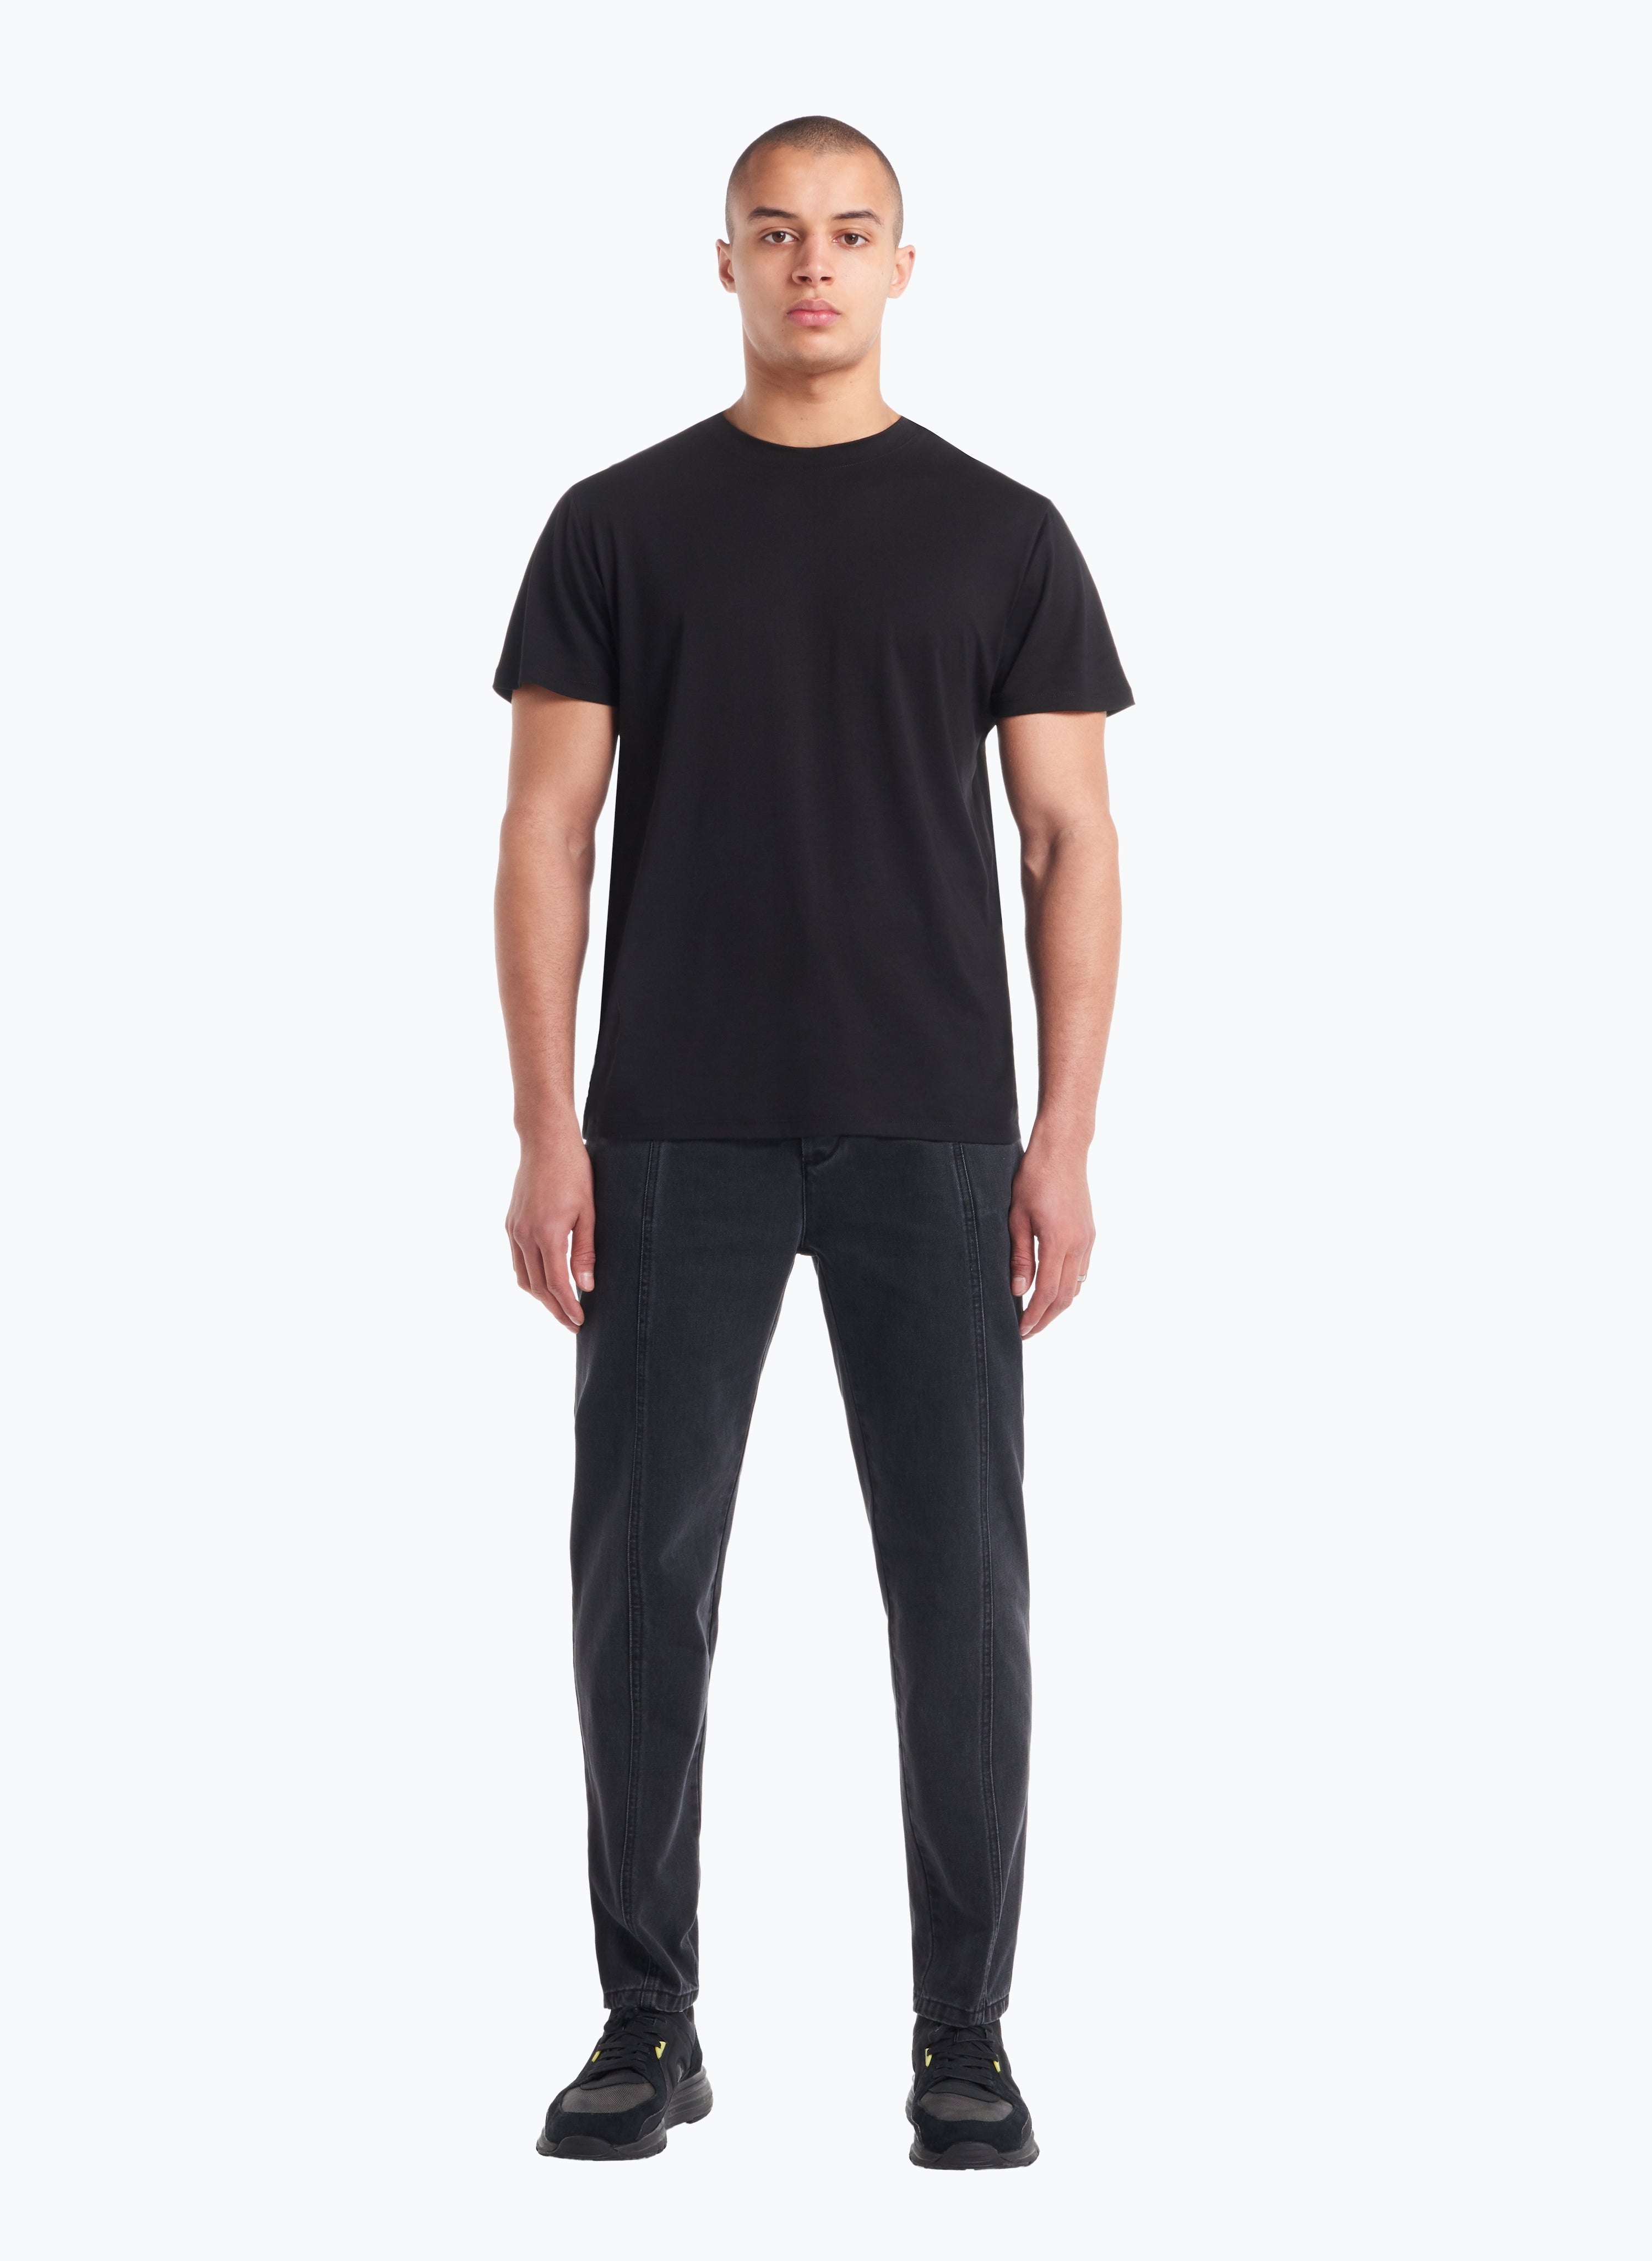 Short Sleeve Crew Neck T-Shirt in Black Blue Tencel